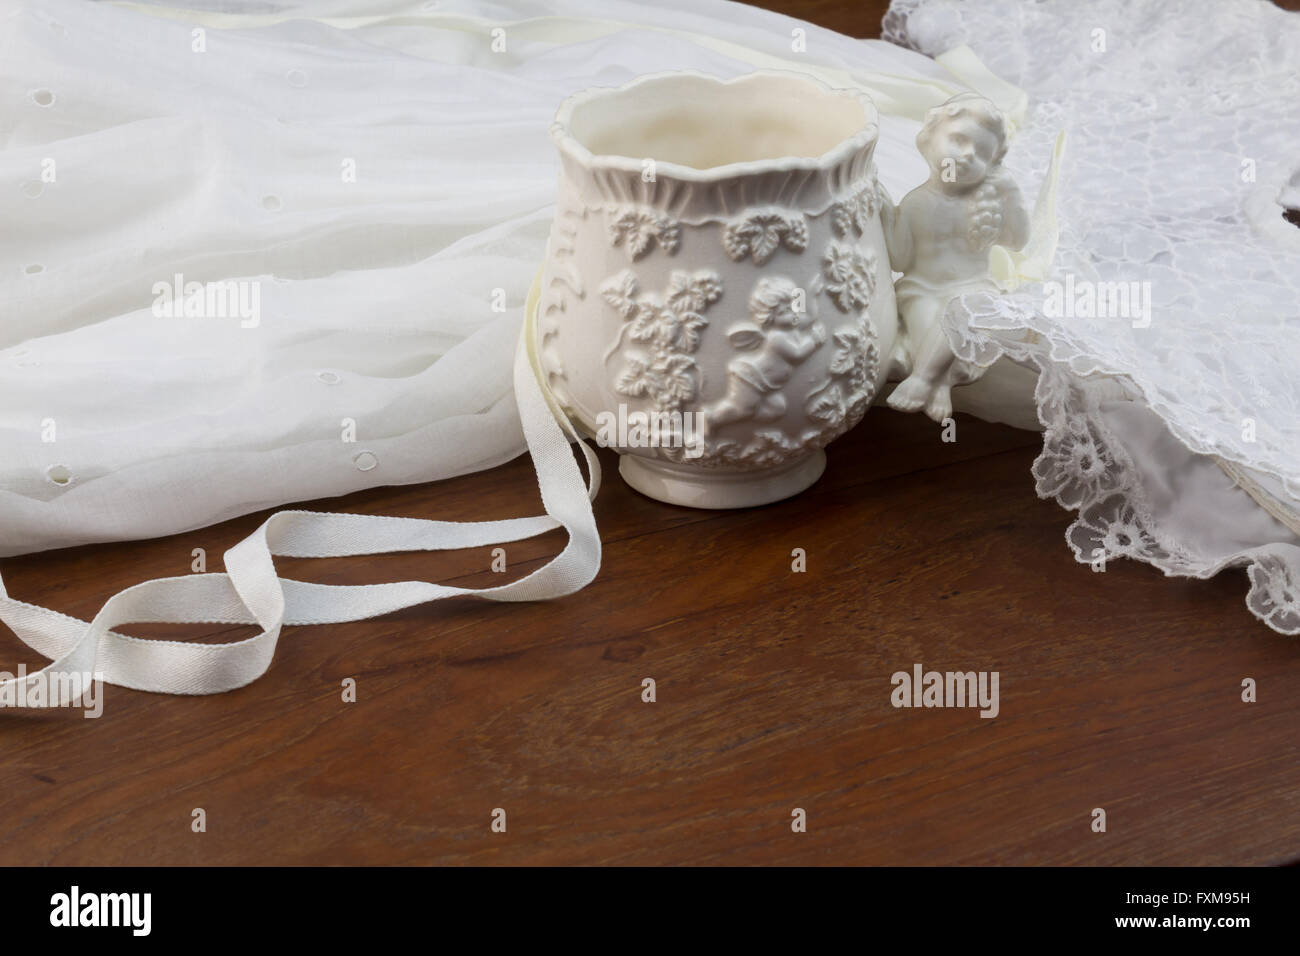 Vintage porcelain baby christening cup and baptism dress on wooden table - Stock Image